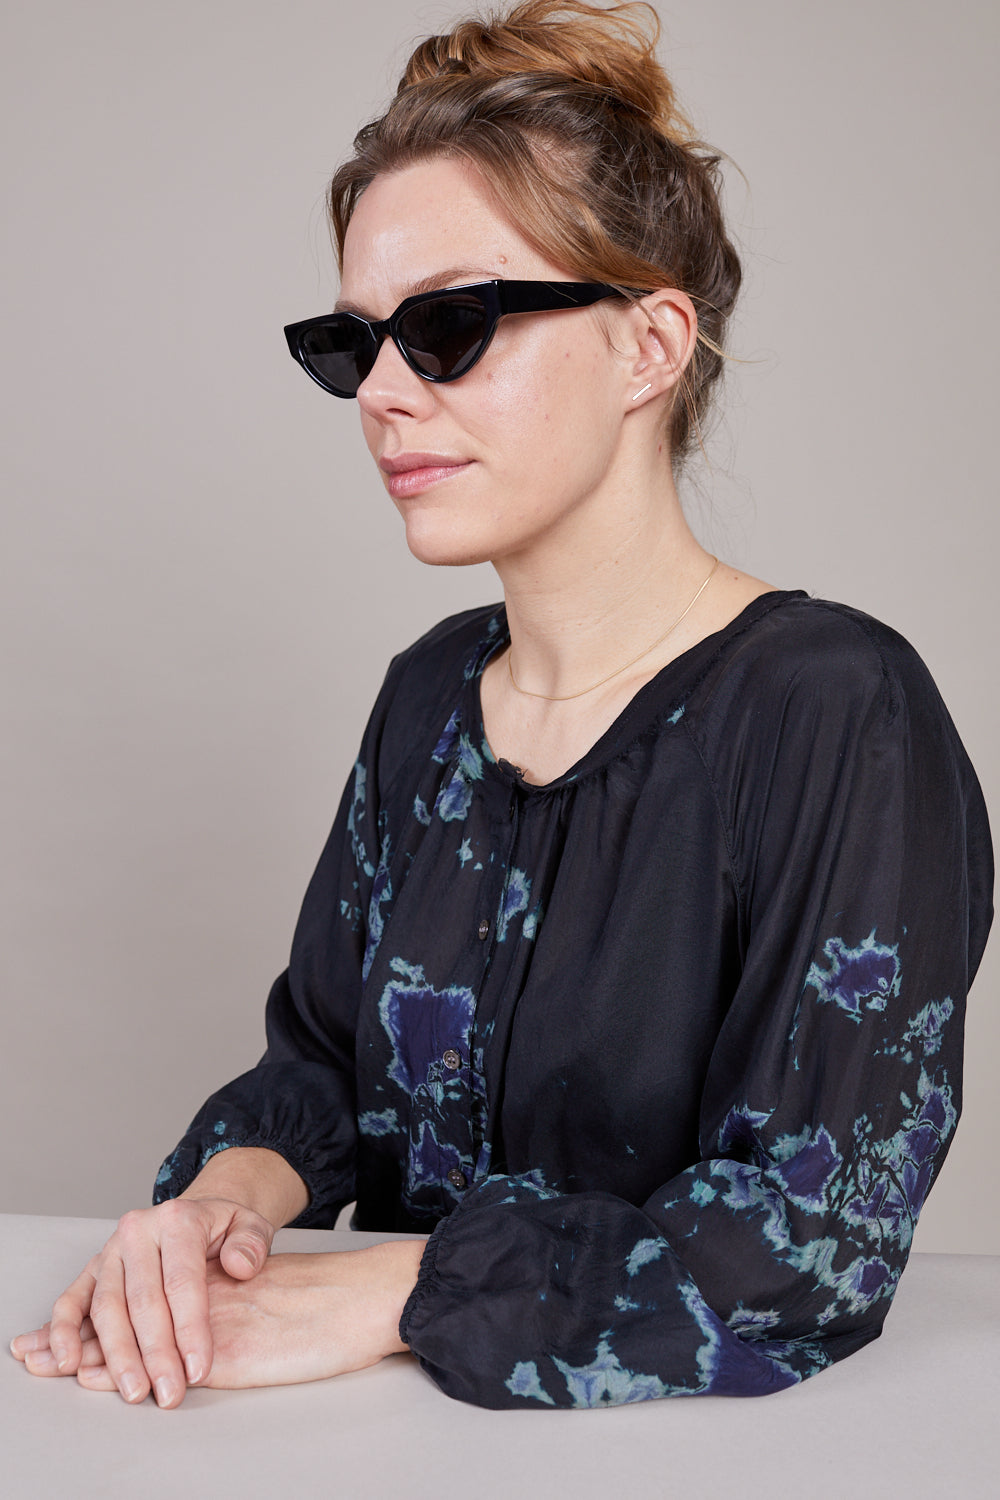 Acie Sunglasses in Crystal Black